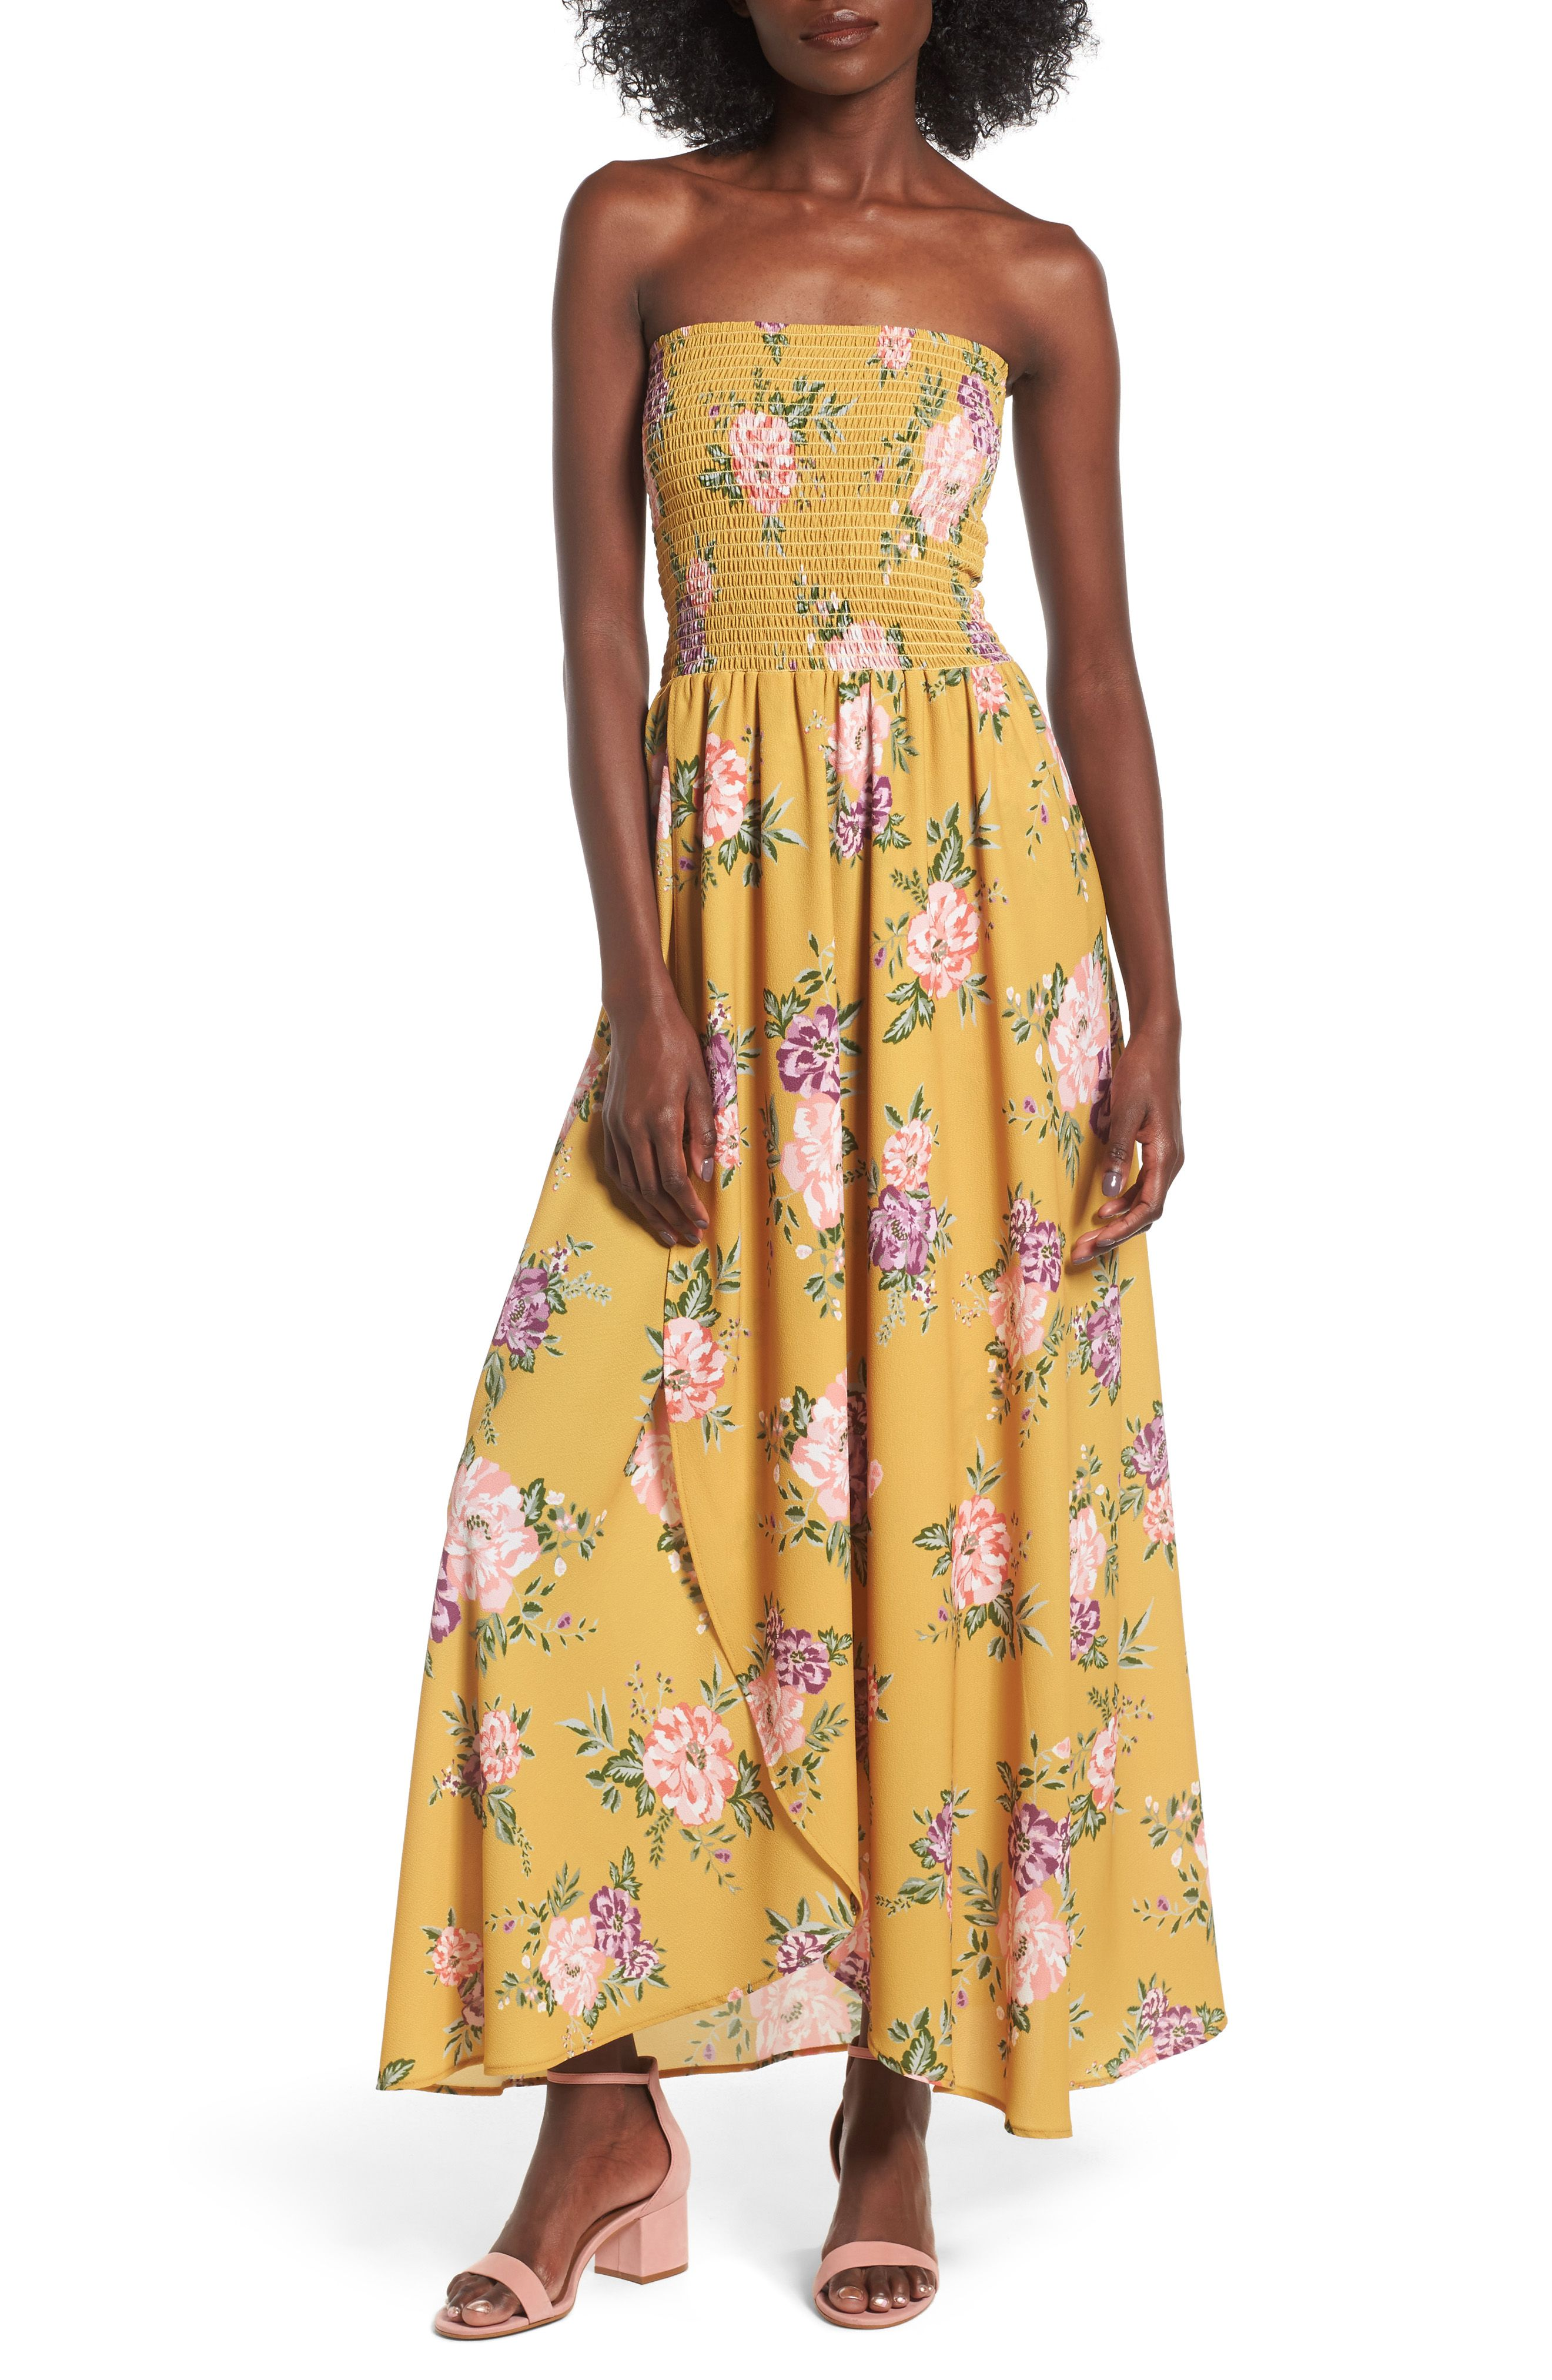 Smocked Strapless Maxi Dress Lauren Sims Maxi Dresses For Summer Easy To Wear Strapless Maxi Dress With Such A Fu Dresses Cheap Dresses Strapless Maxi Dress [ 4048 x 2640 Pixel ]